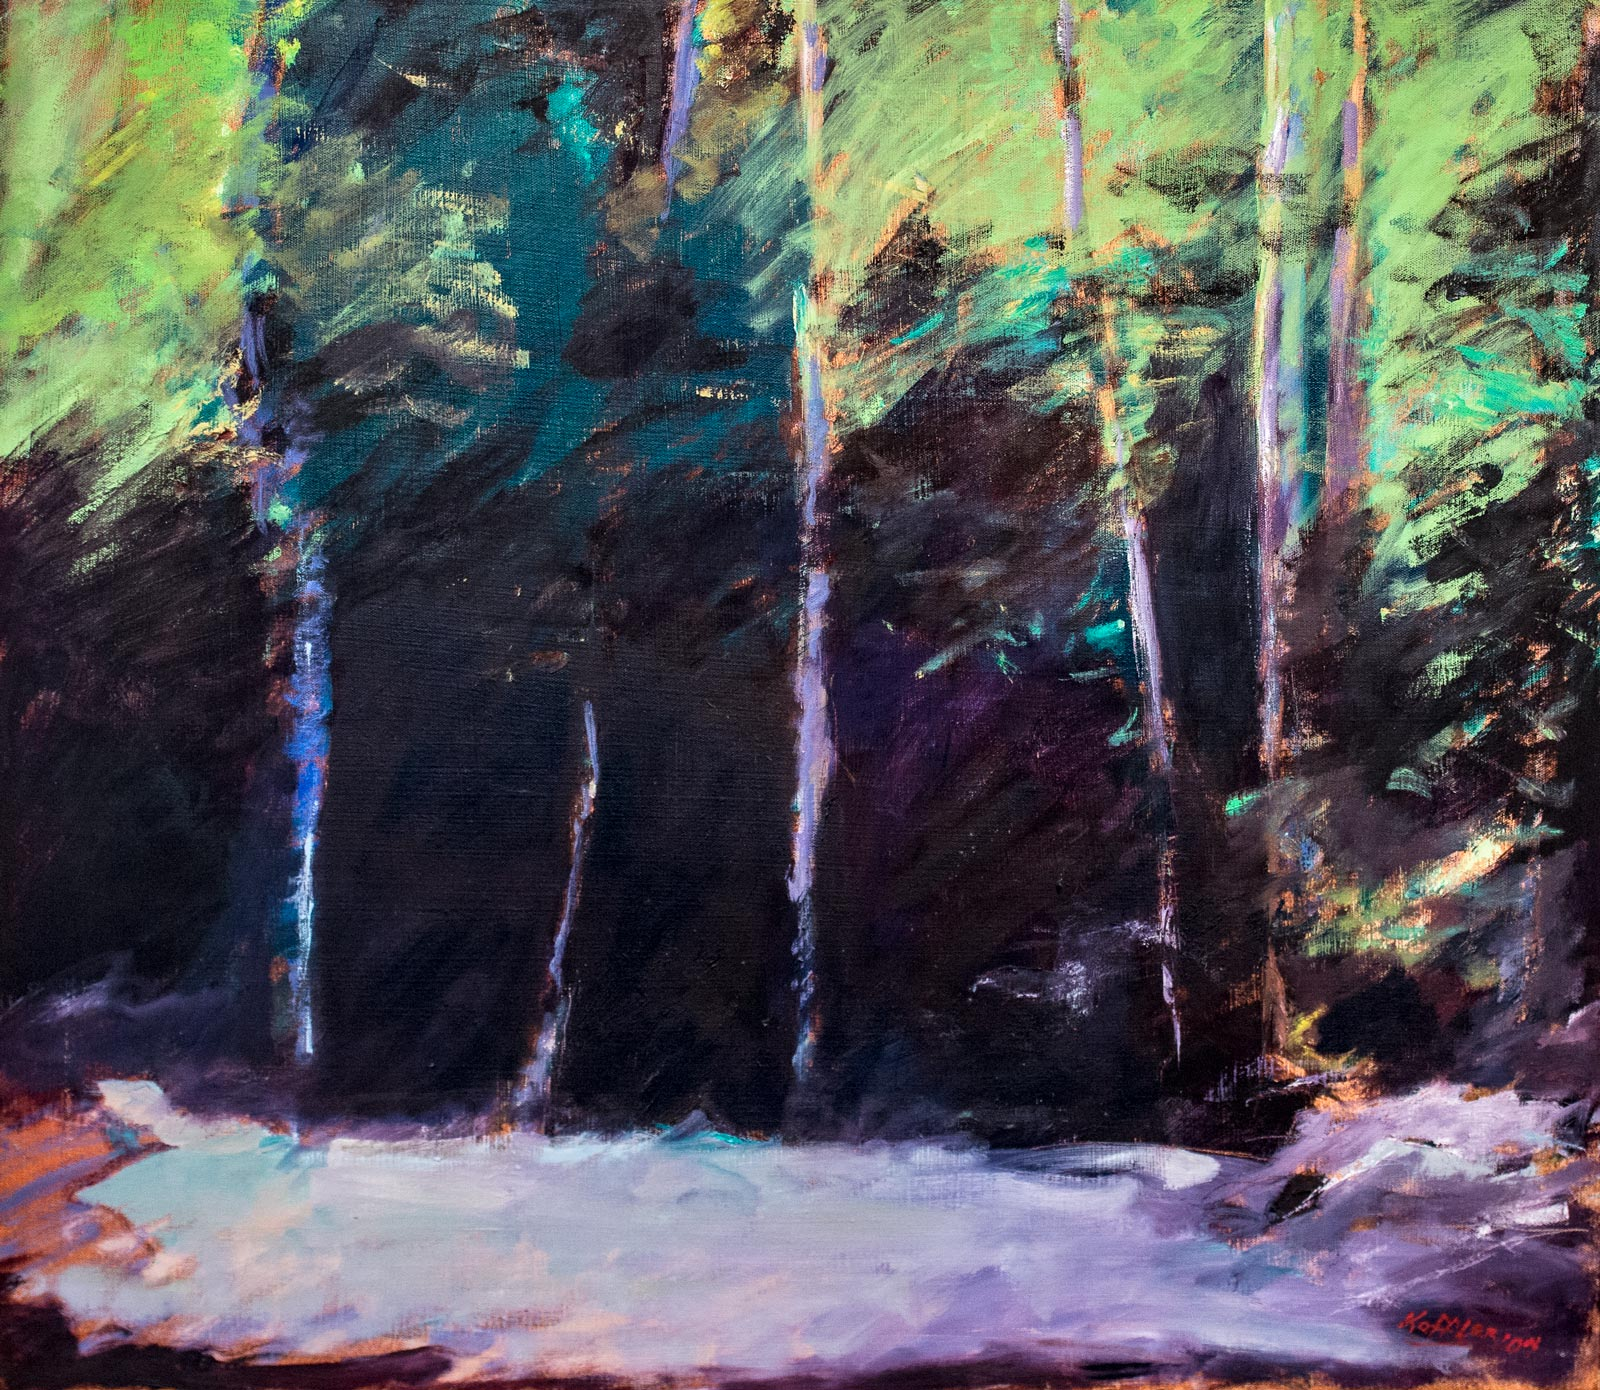 Robert-Steven-Koffler---Art-Catalog_Dense_Trees_2007_26x30